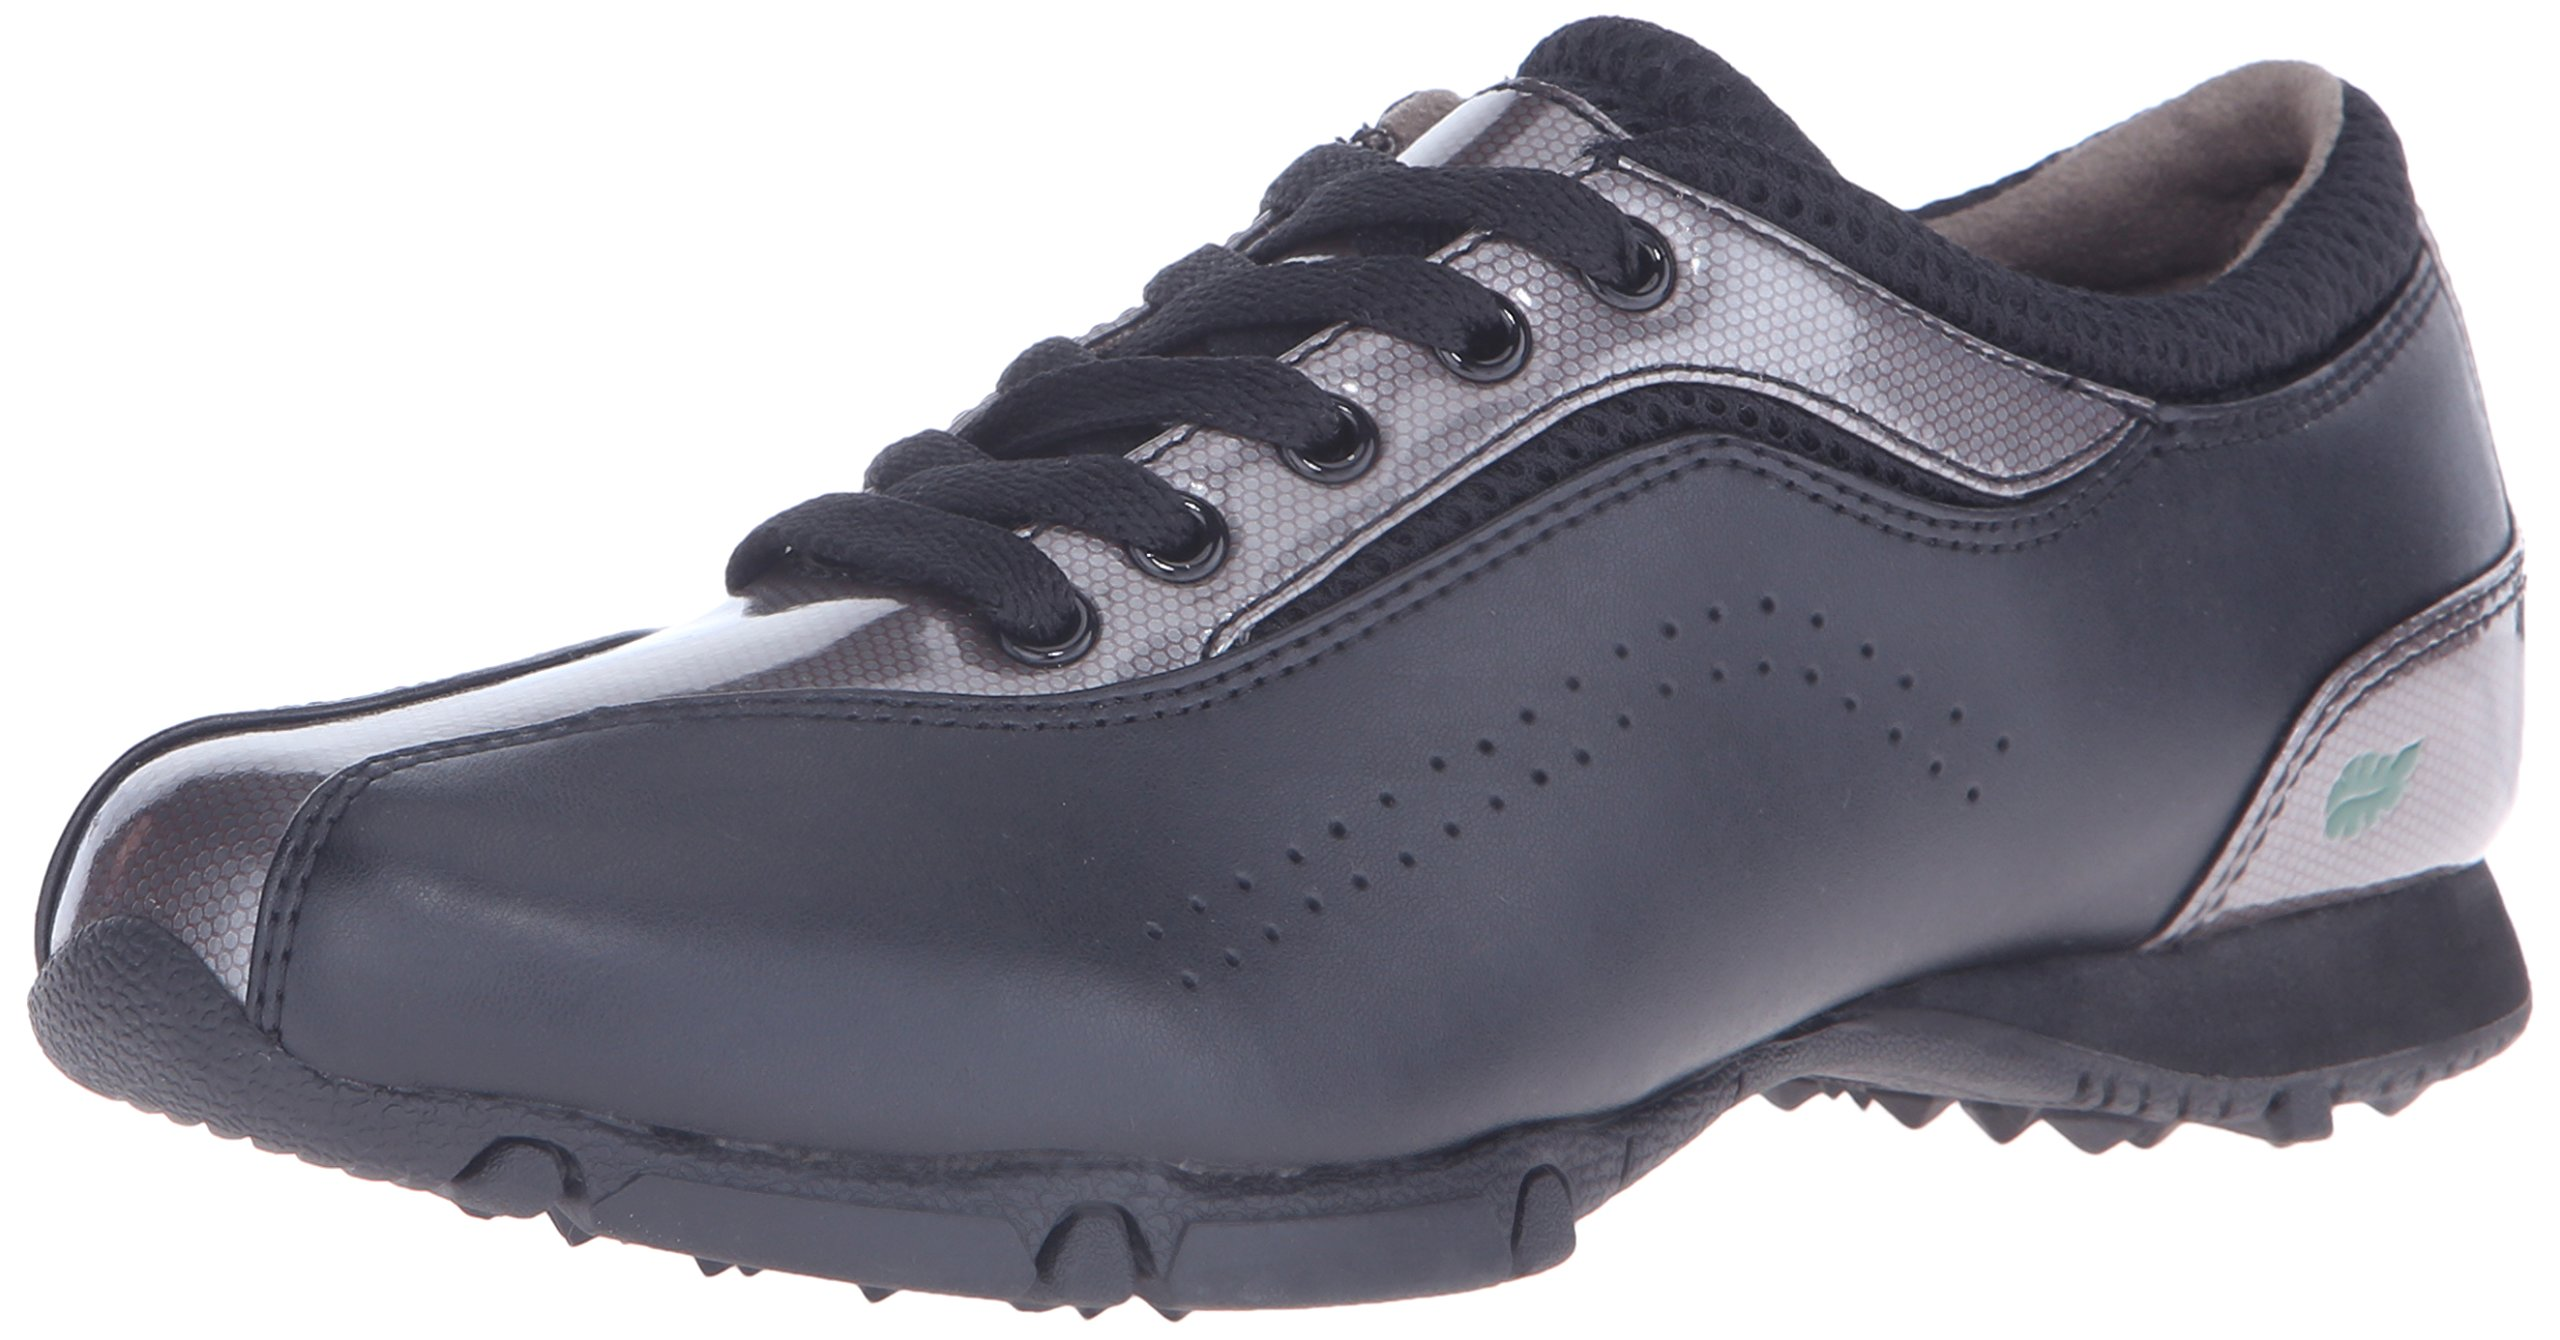 Golfstream Women's Euro Lace-Up Golf Shoe, Black/Charcoal, 5.5 M US